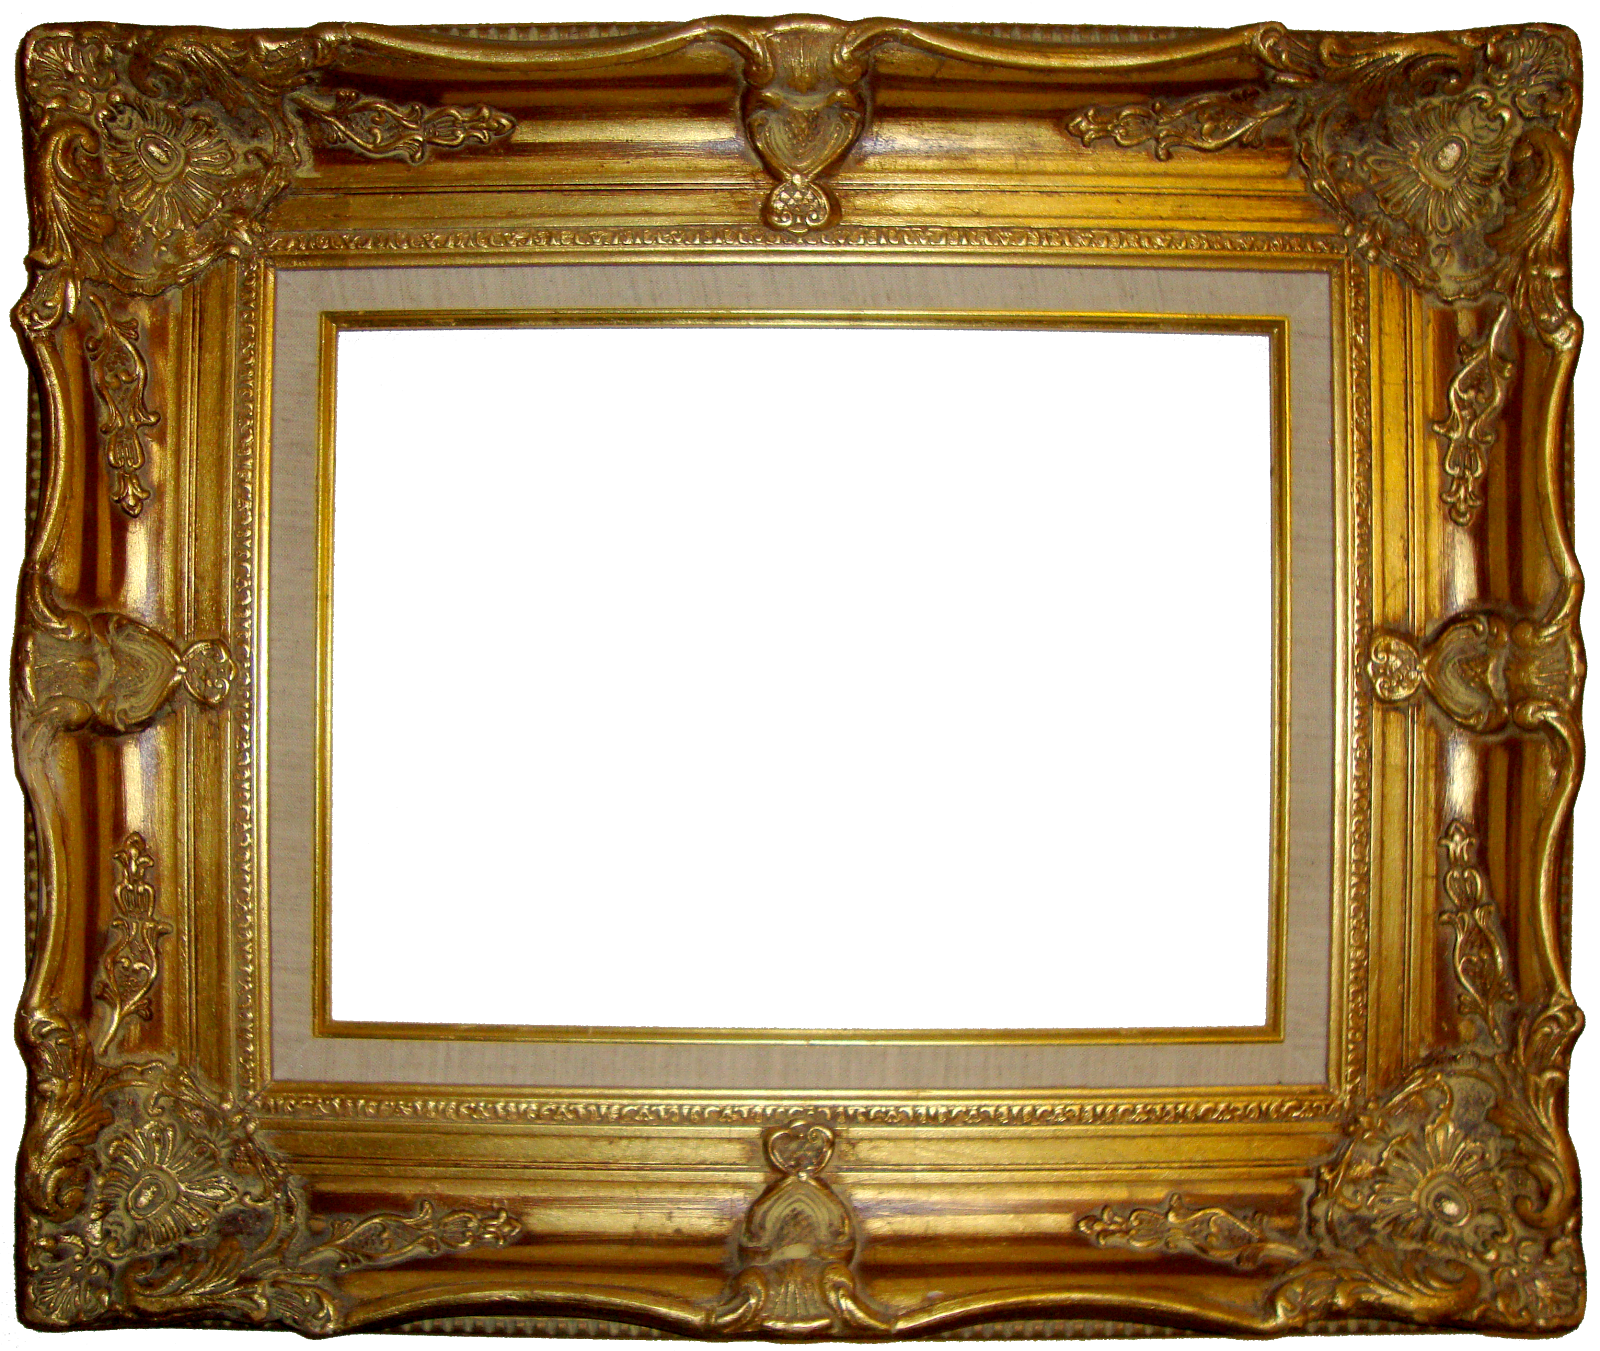 gold frame, bie fancy vintage ornate digital frames #25110